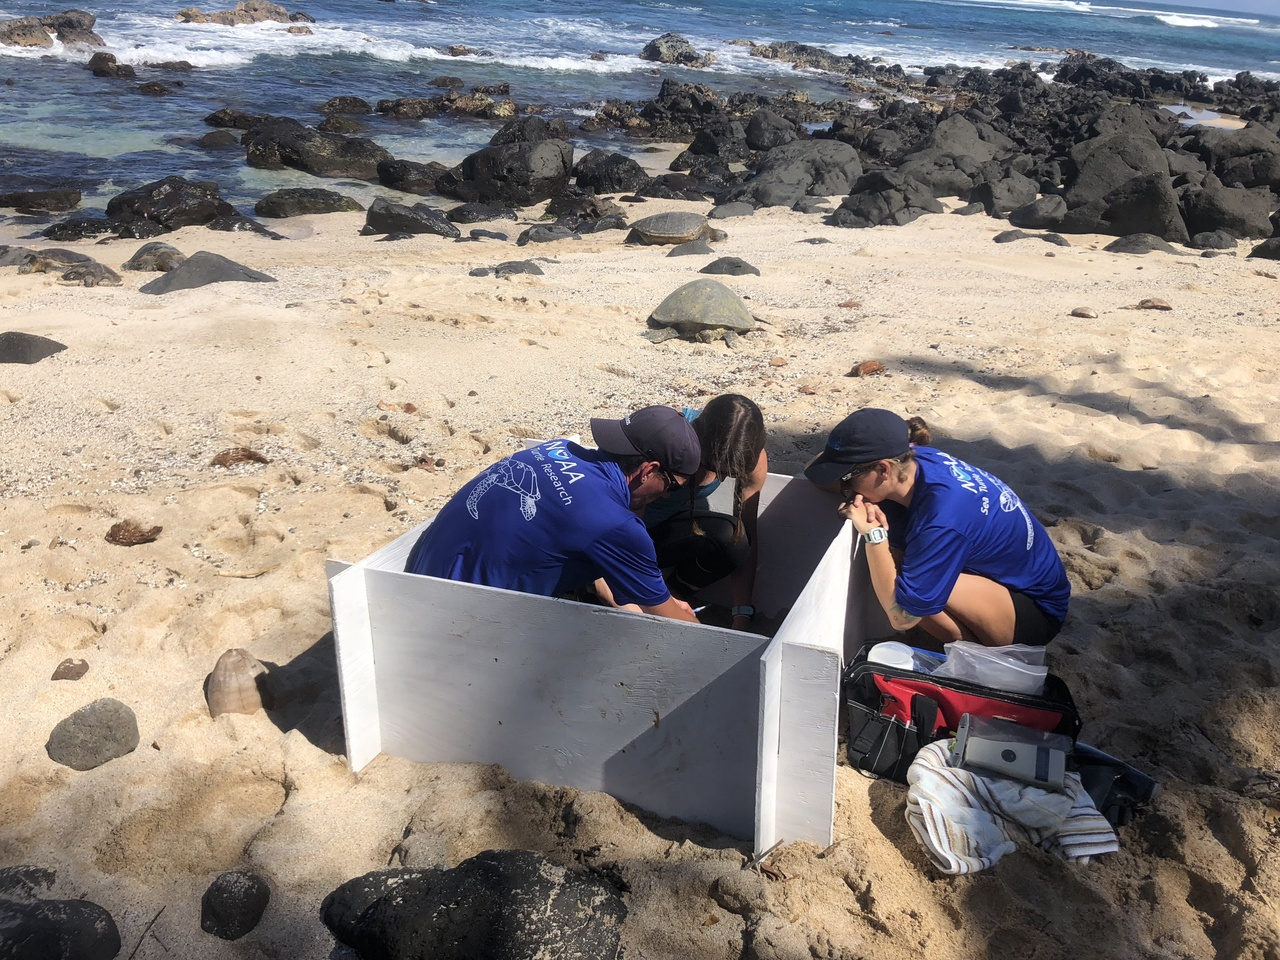 Researches measure a turtle in a confined box on the beach